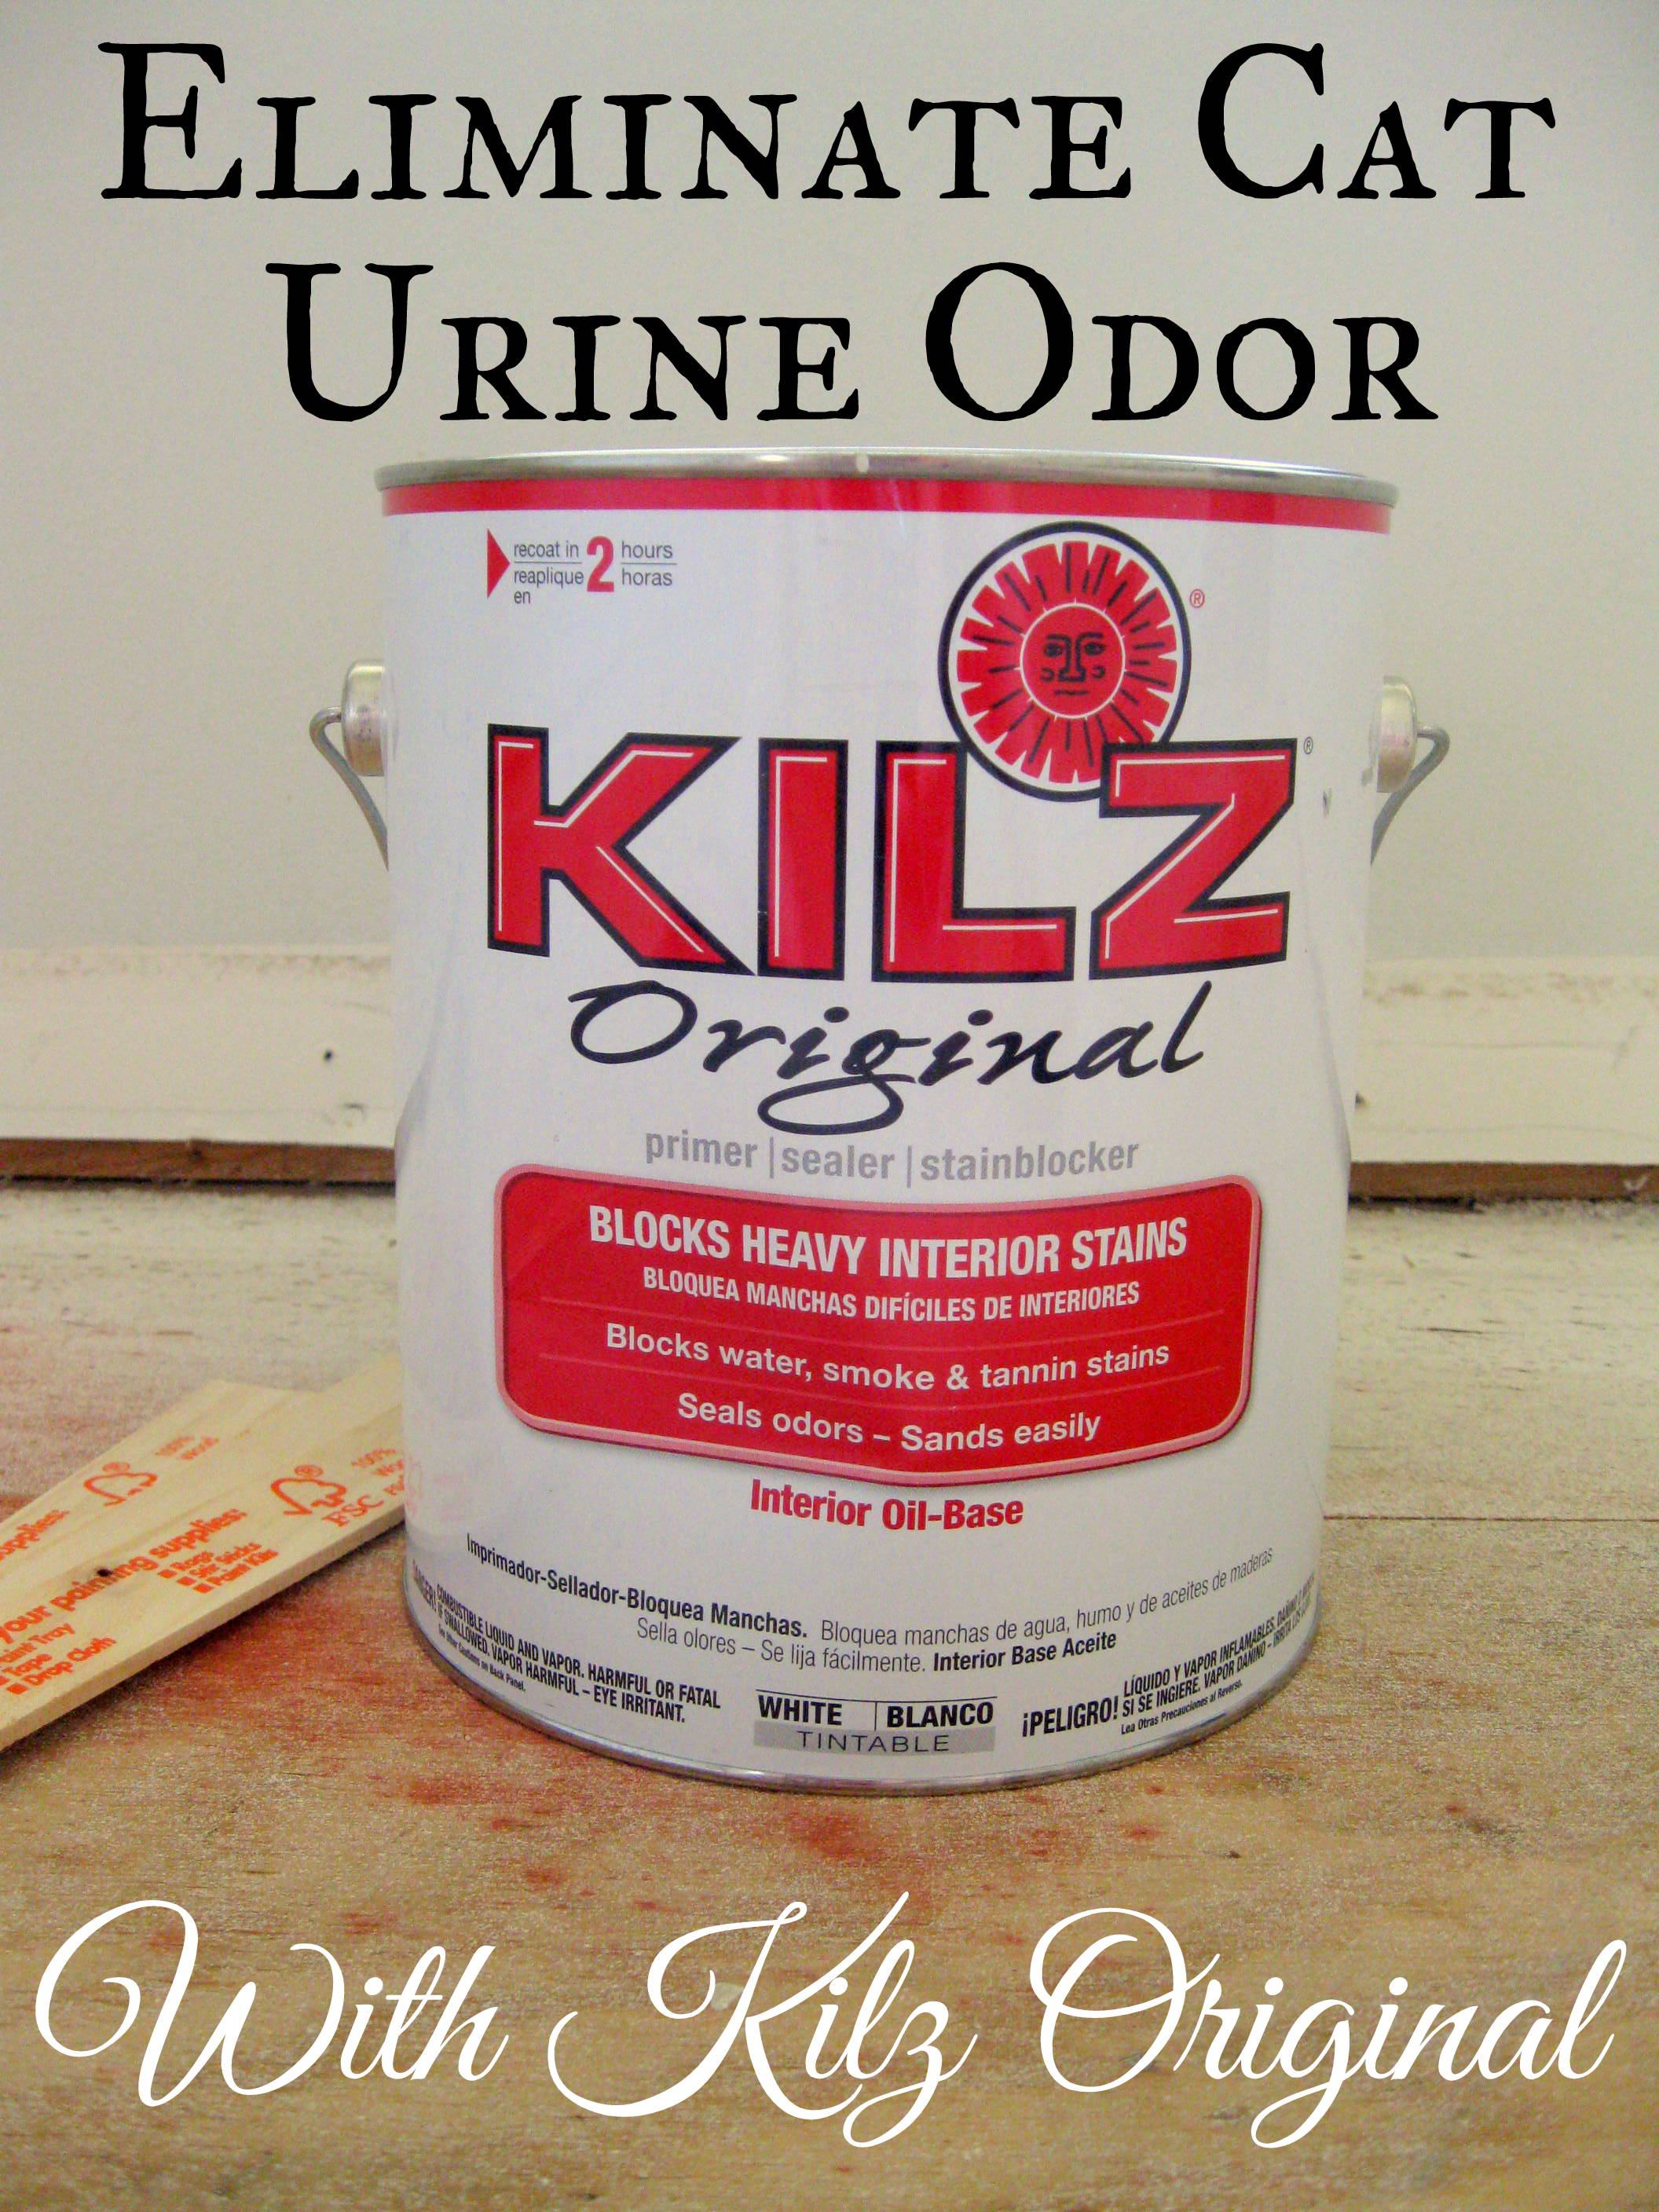 Eliminating Cat Urine Odor